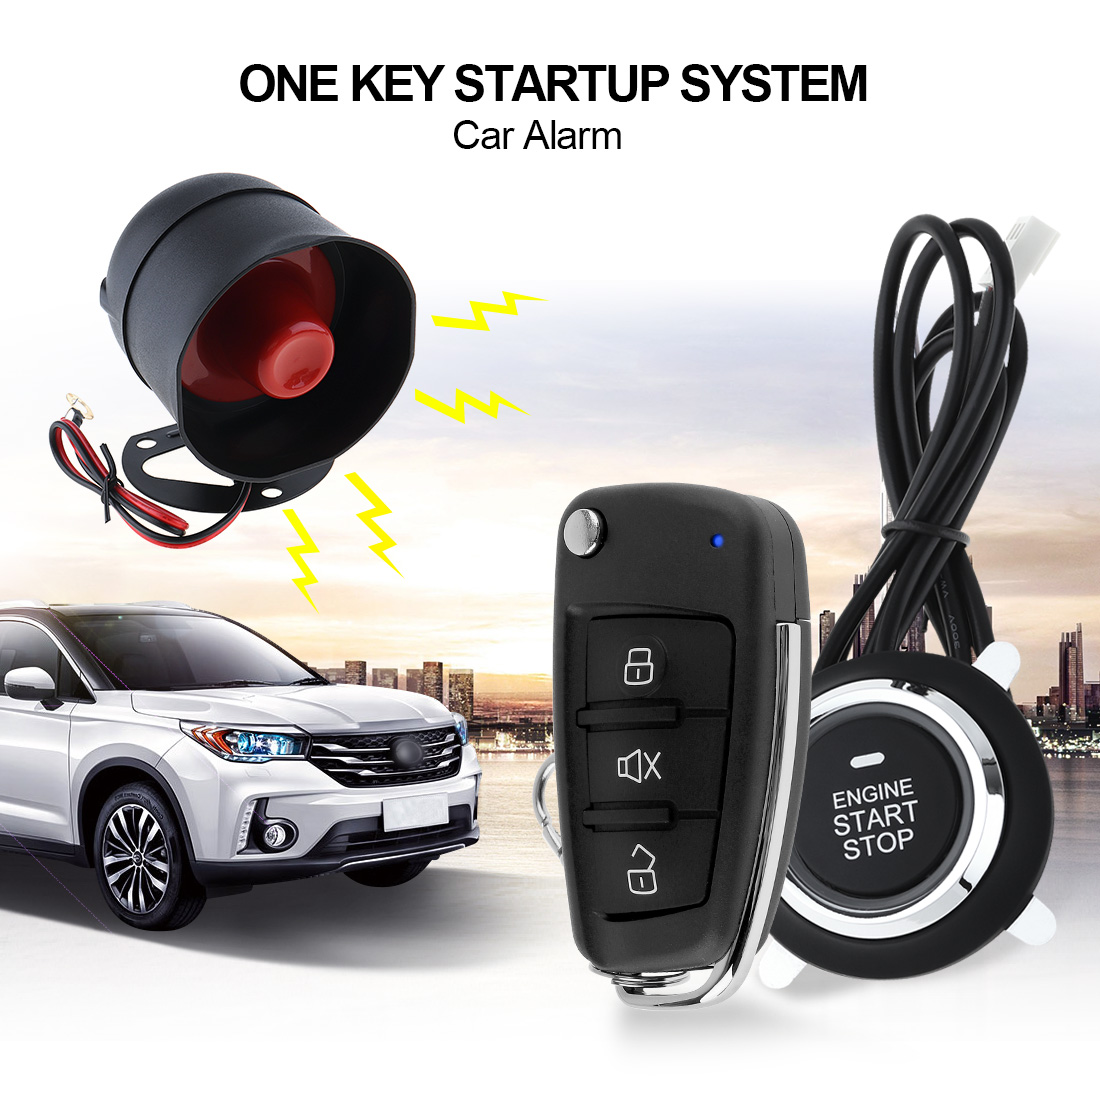 Universal Car Alarm Security System Remote Start Stop Button Engine System Vehicle Keyless Entry Door Lock Auto Central Locking